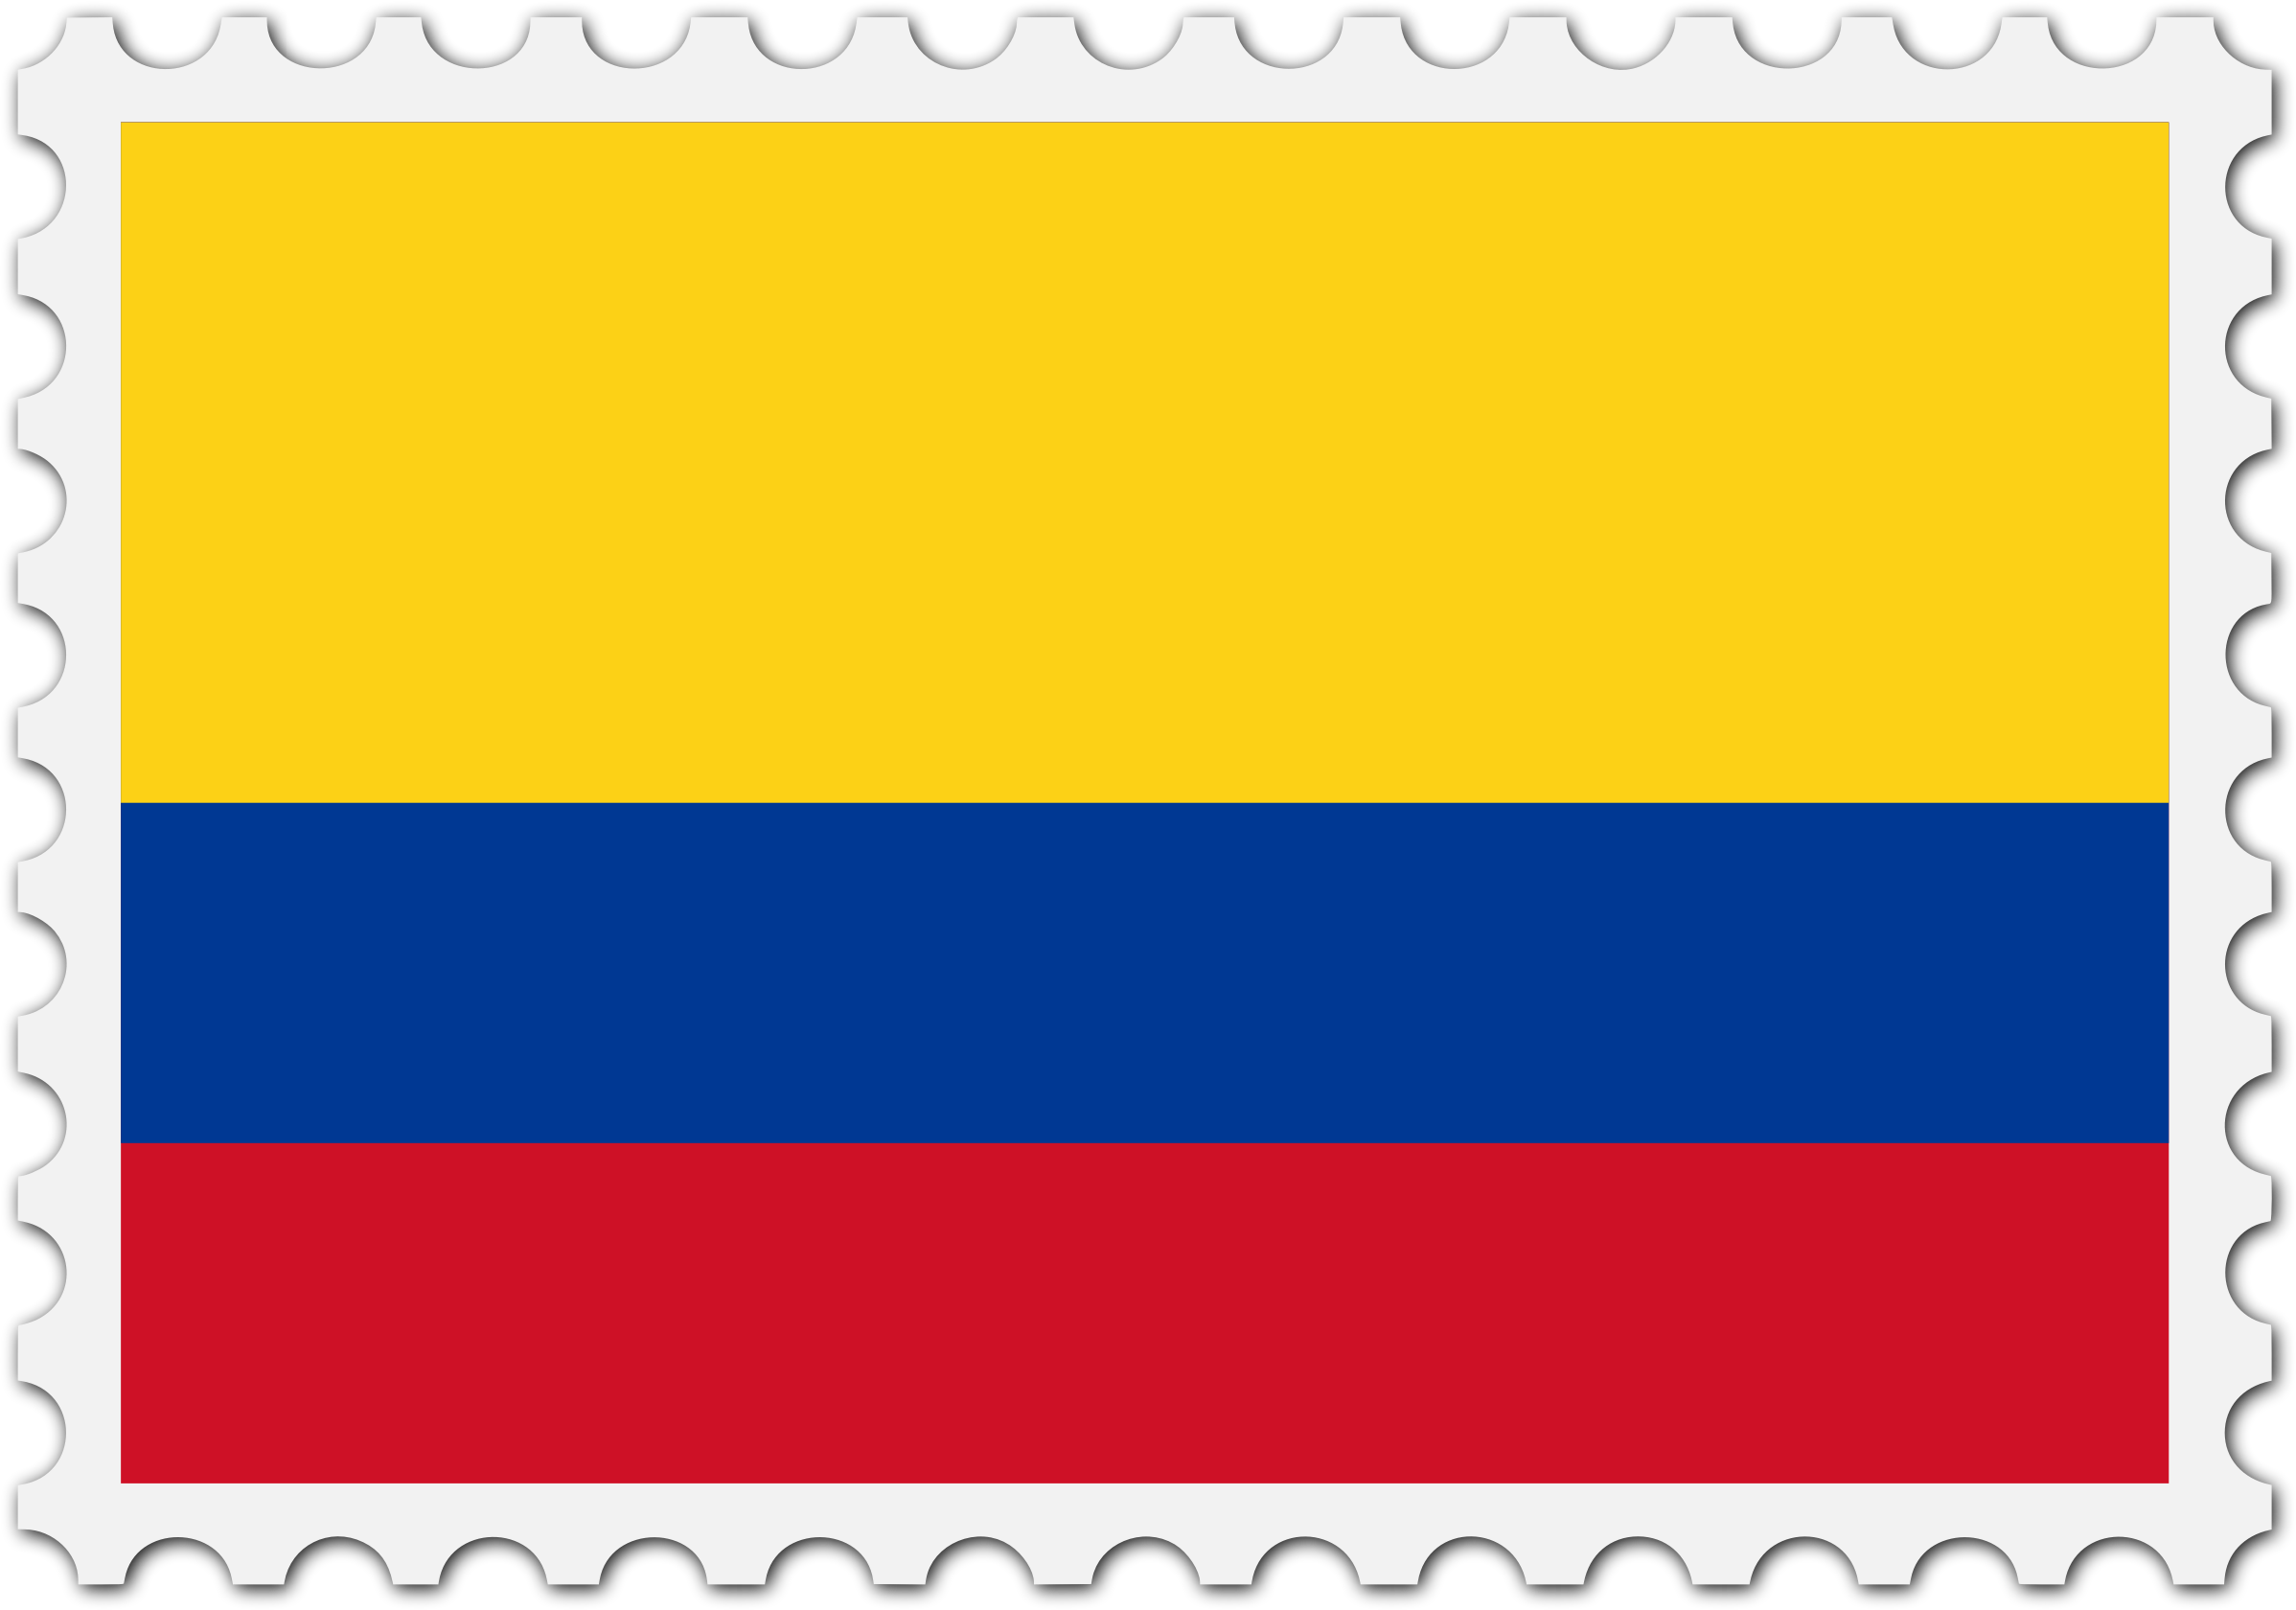 Colombia flag stamp by Firkin